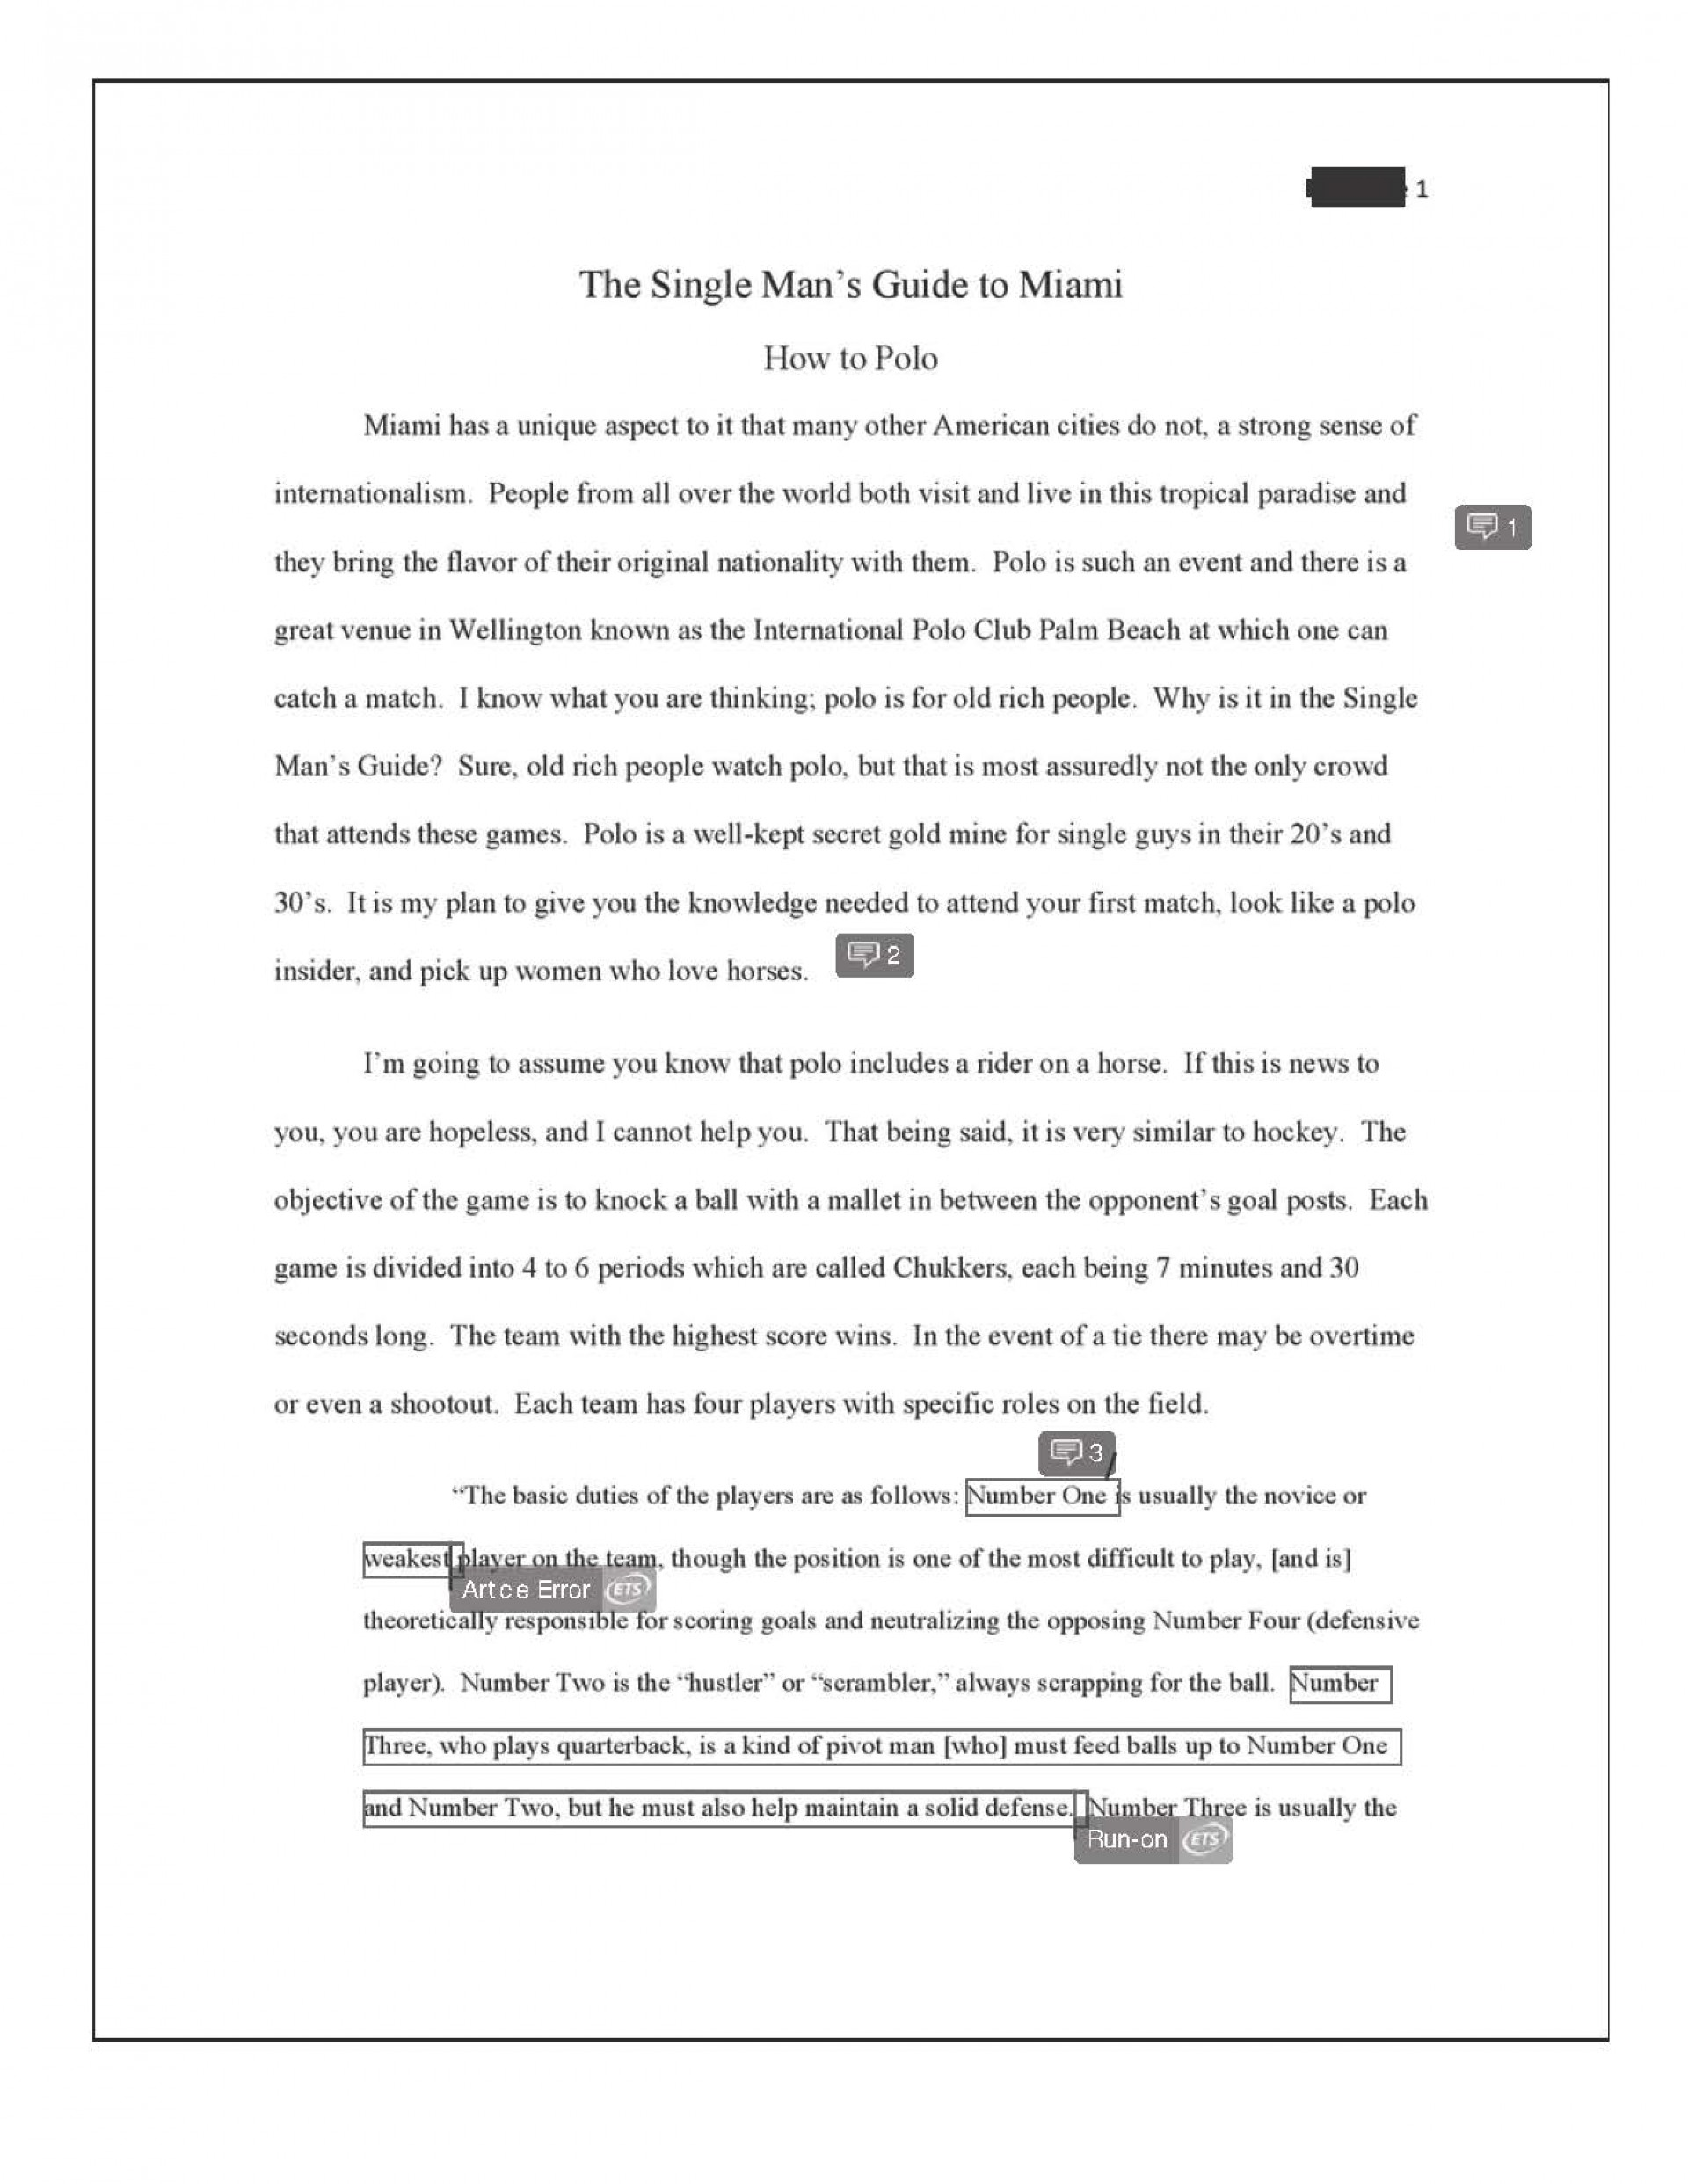 006 Informative Essay Final How To Polo Redacted Page 2 Example Outstanding Definition 1920